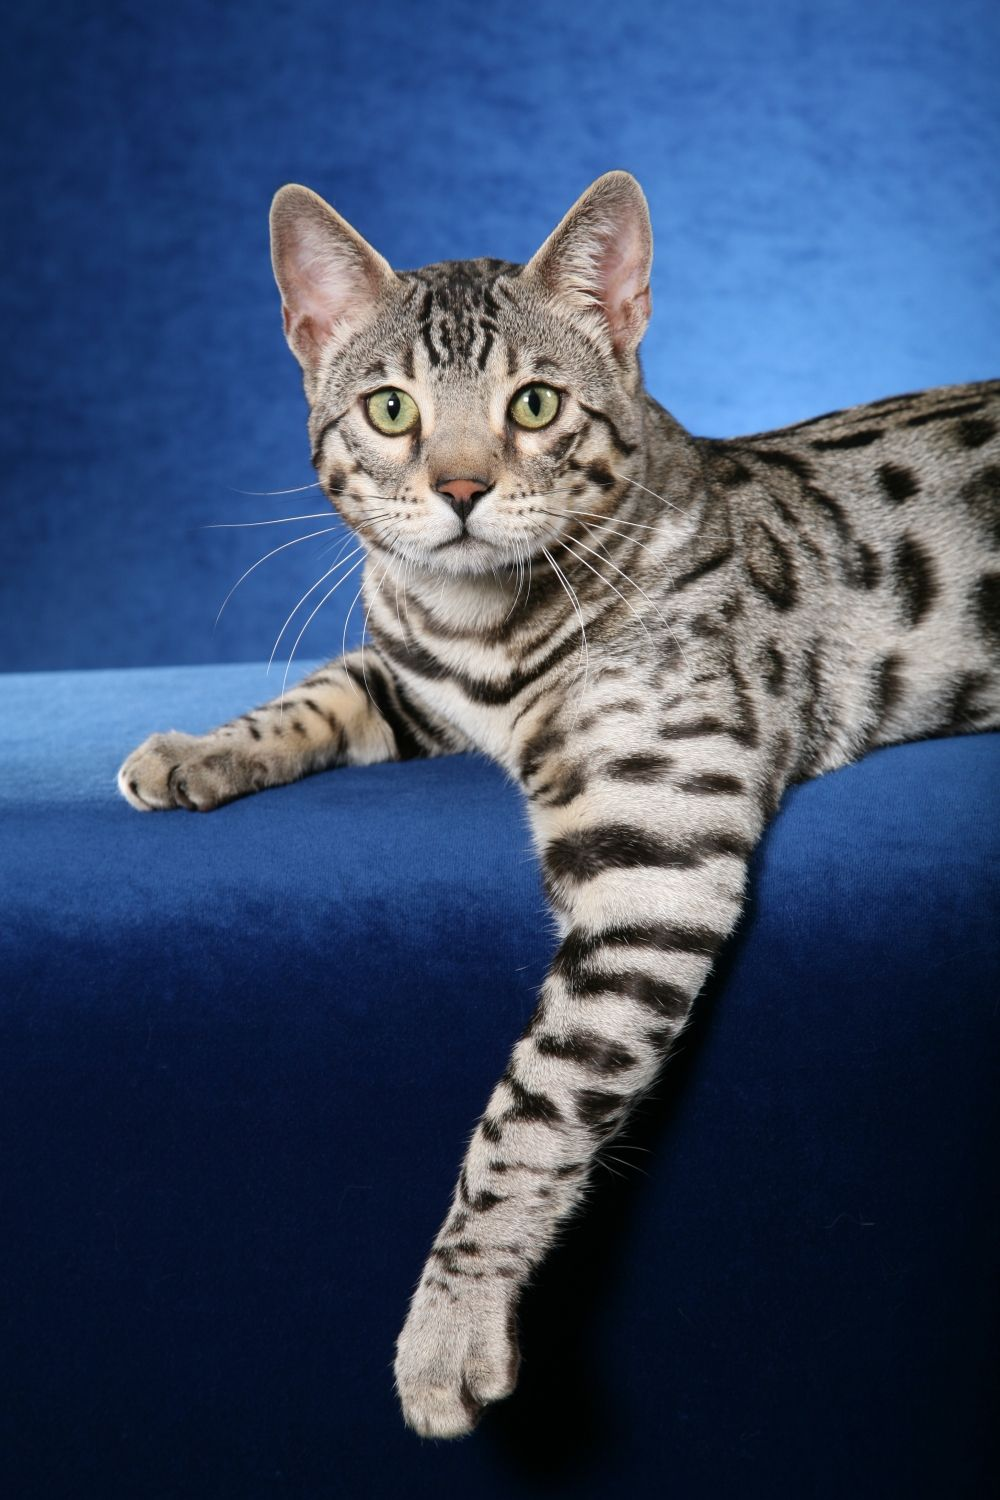 Silver Spotted Bengal Silver Bengal Cat Bengal Cat Tabby Cat